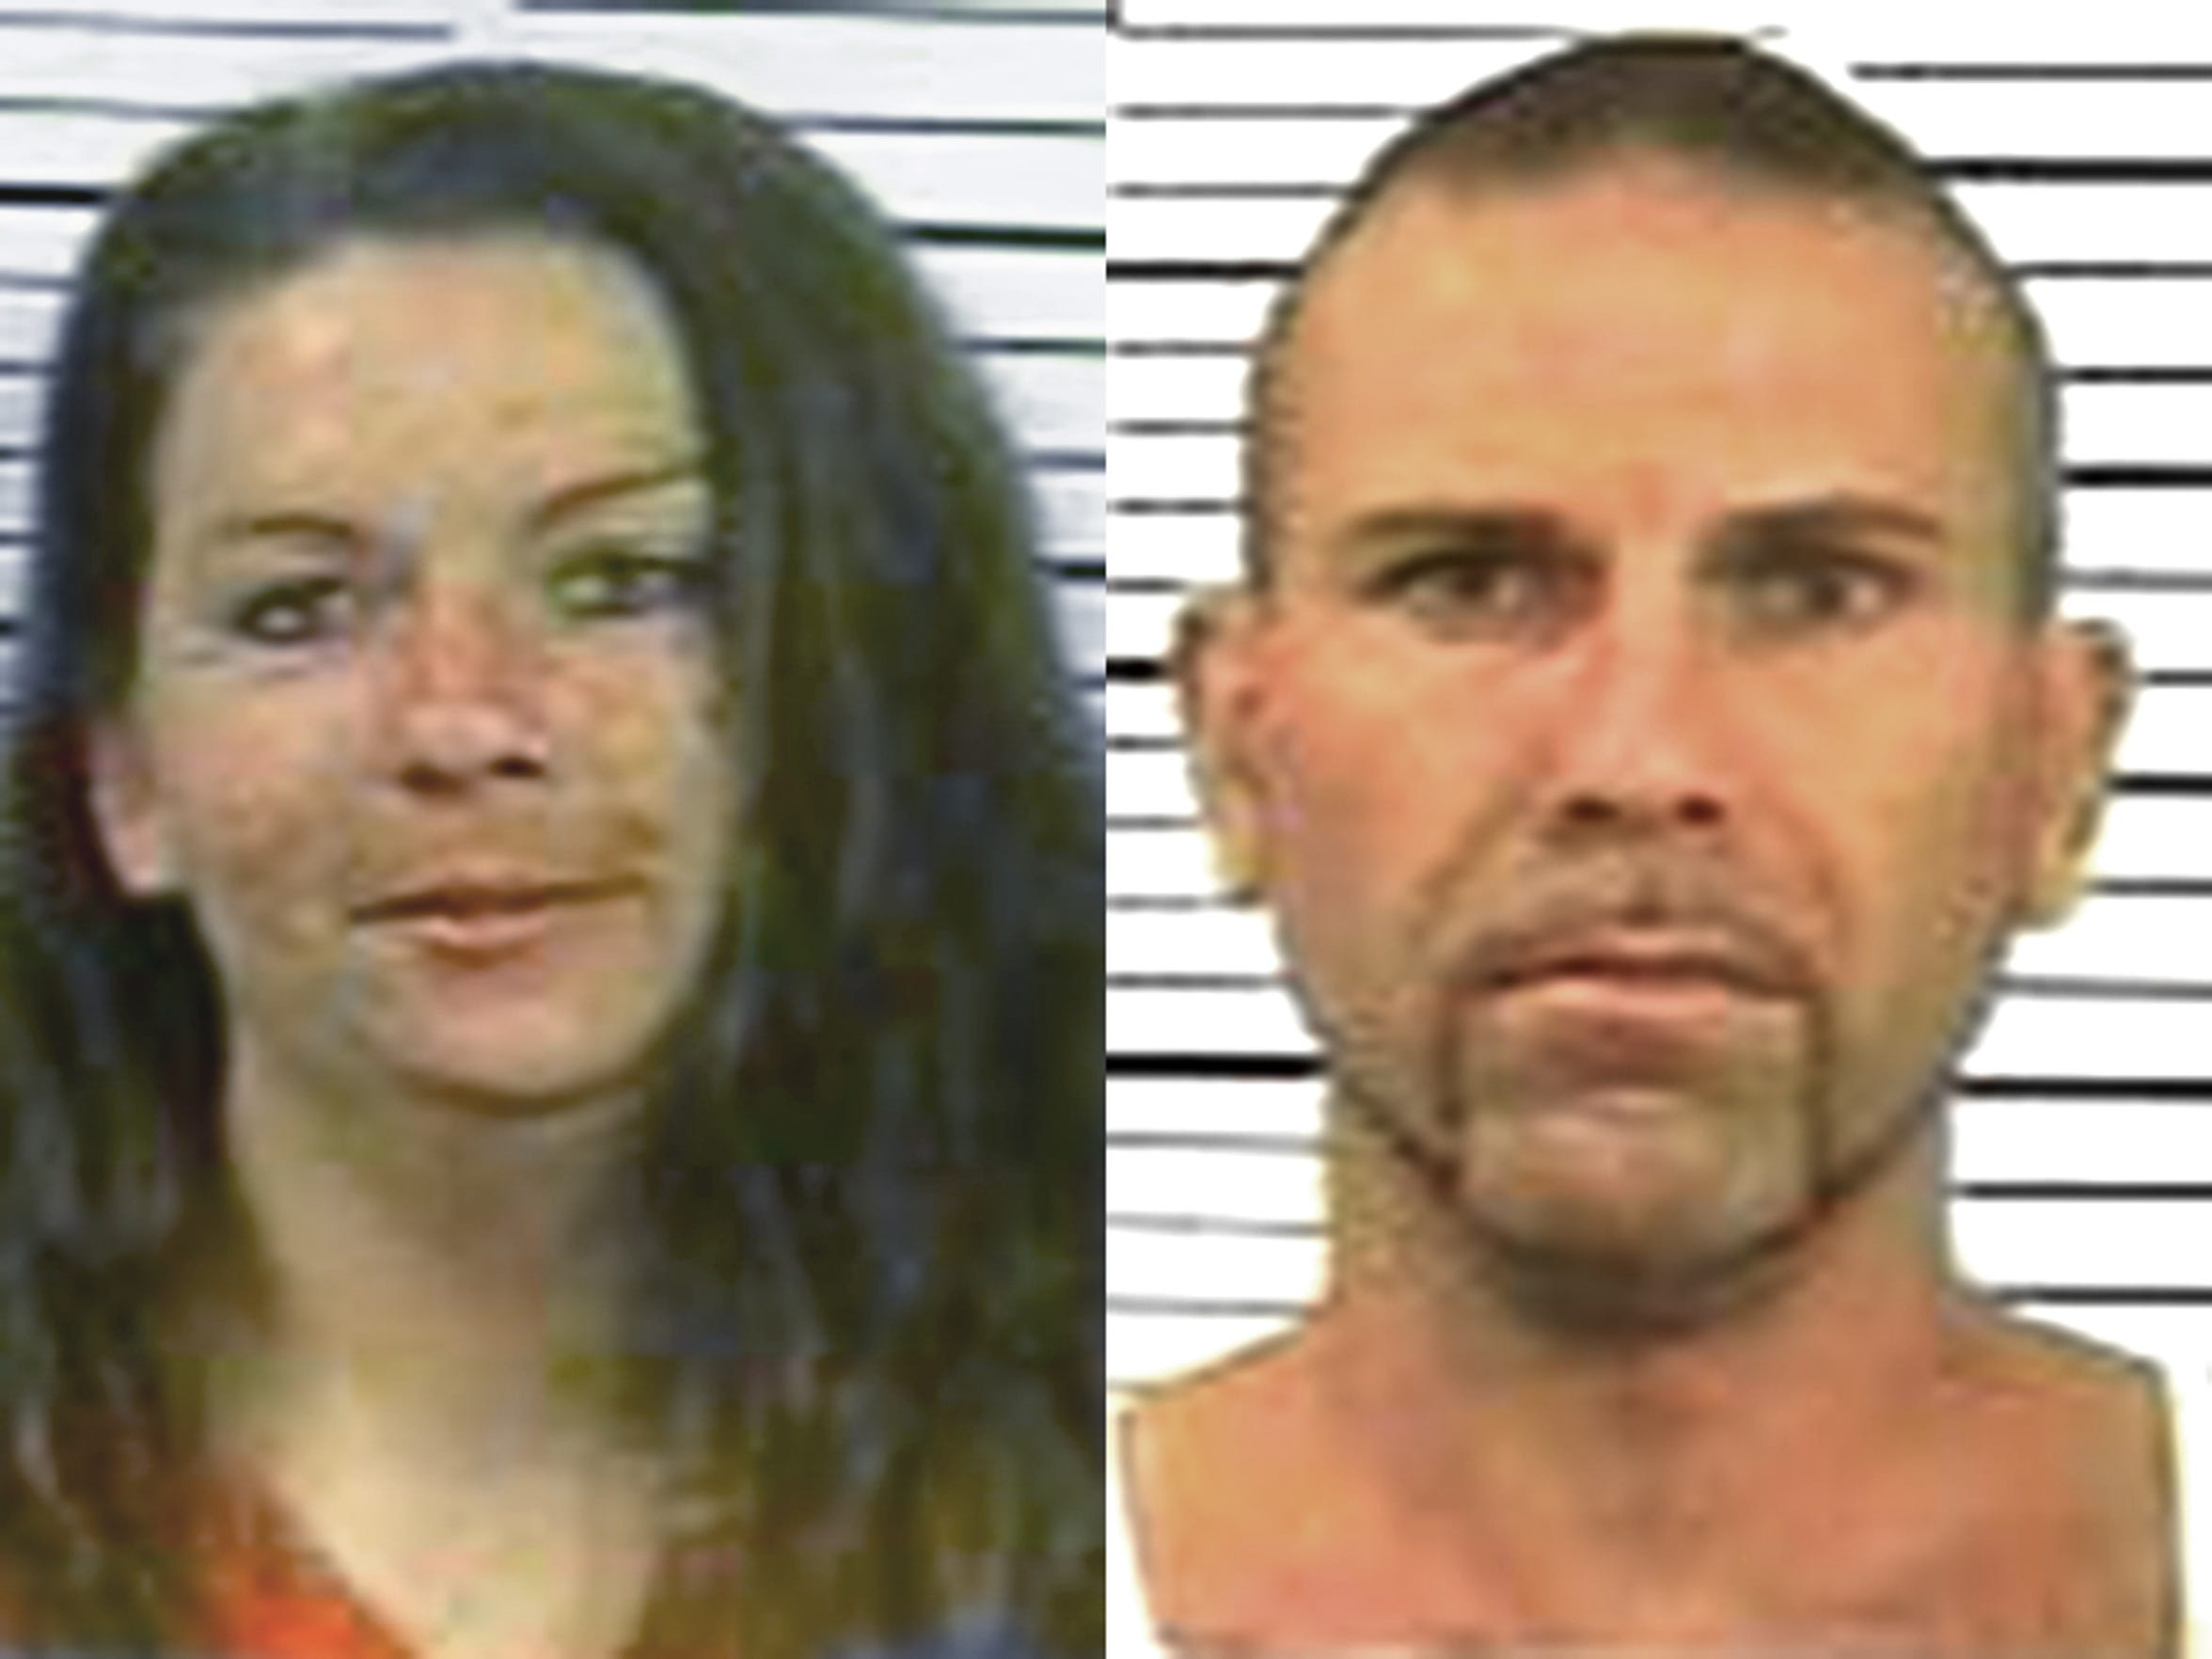 Veronique Henry, left, and Paul Henry III were accused